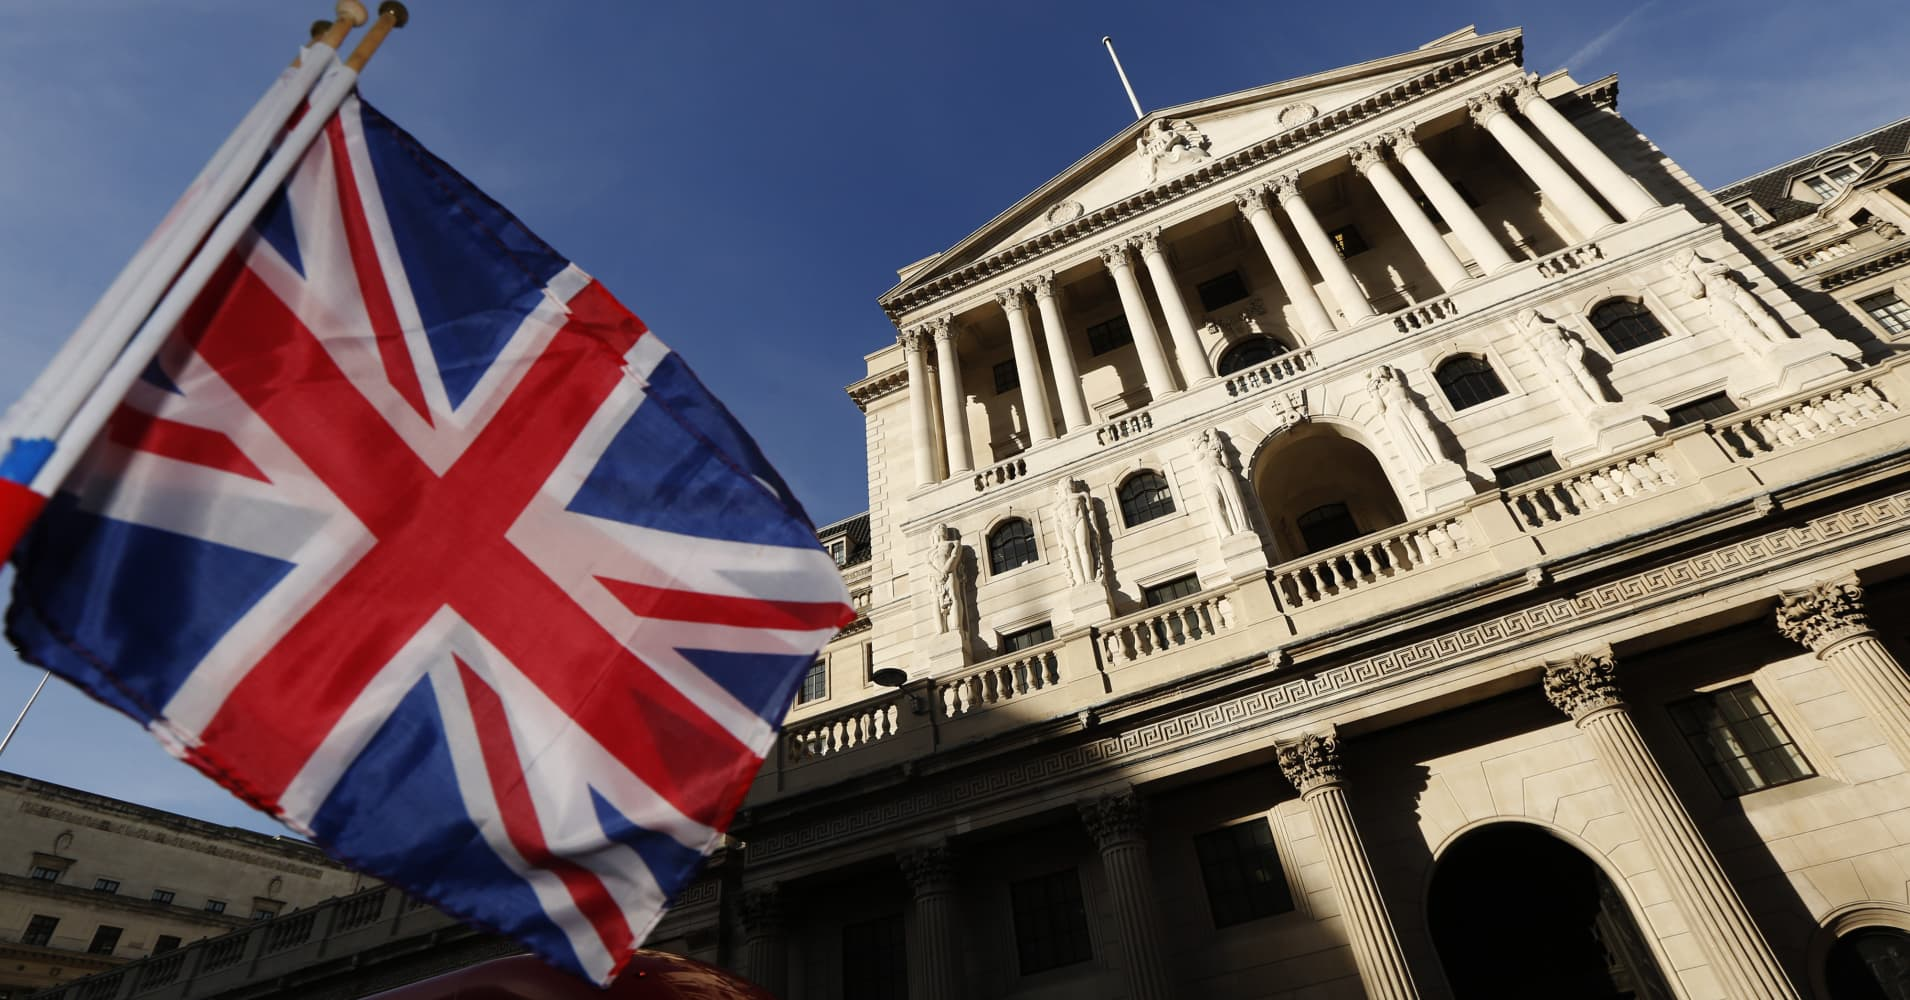 European stocks lower ahead of Bank of England rate decision; Siemens down 4%